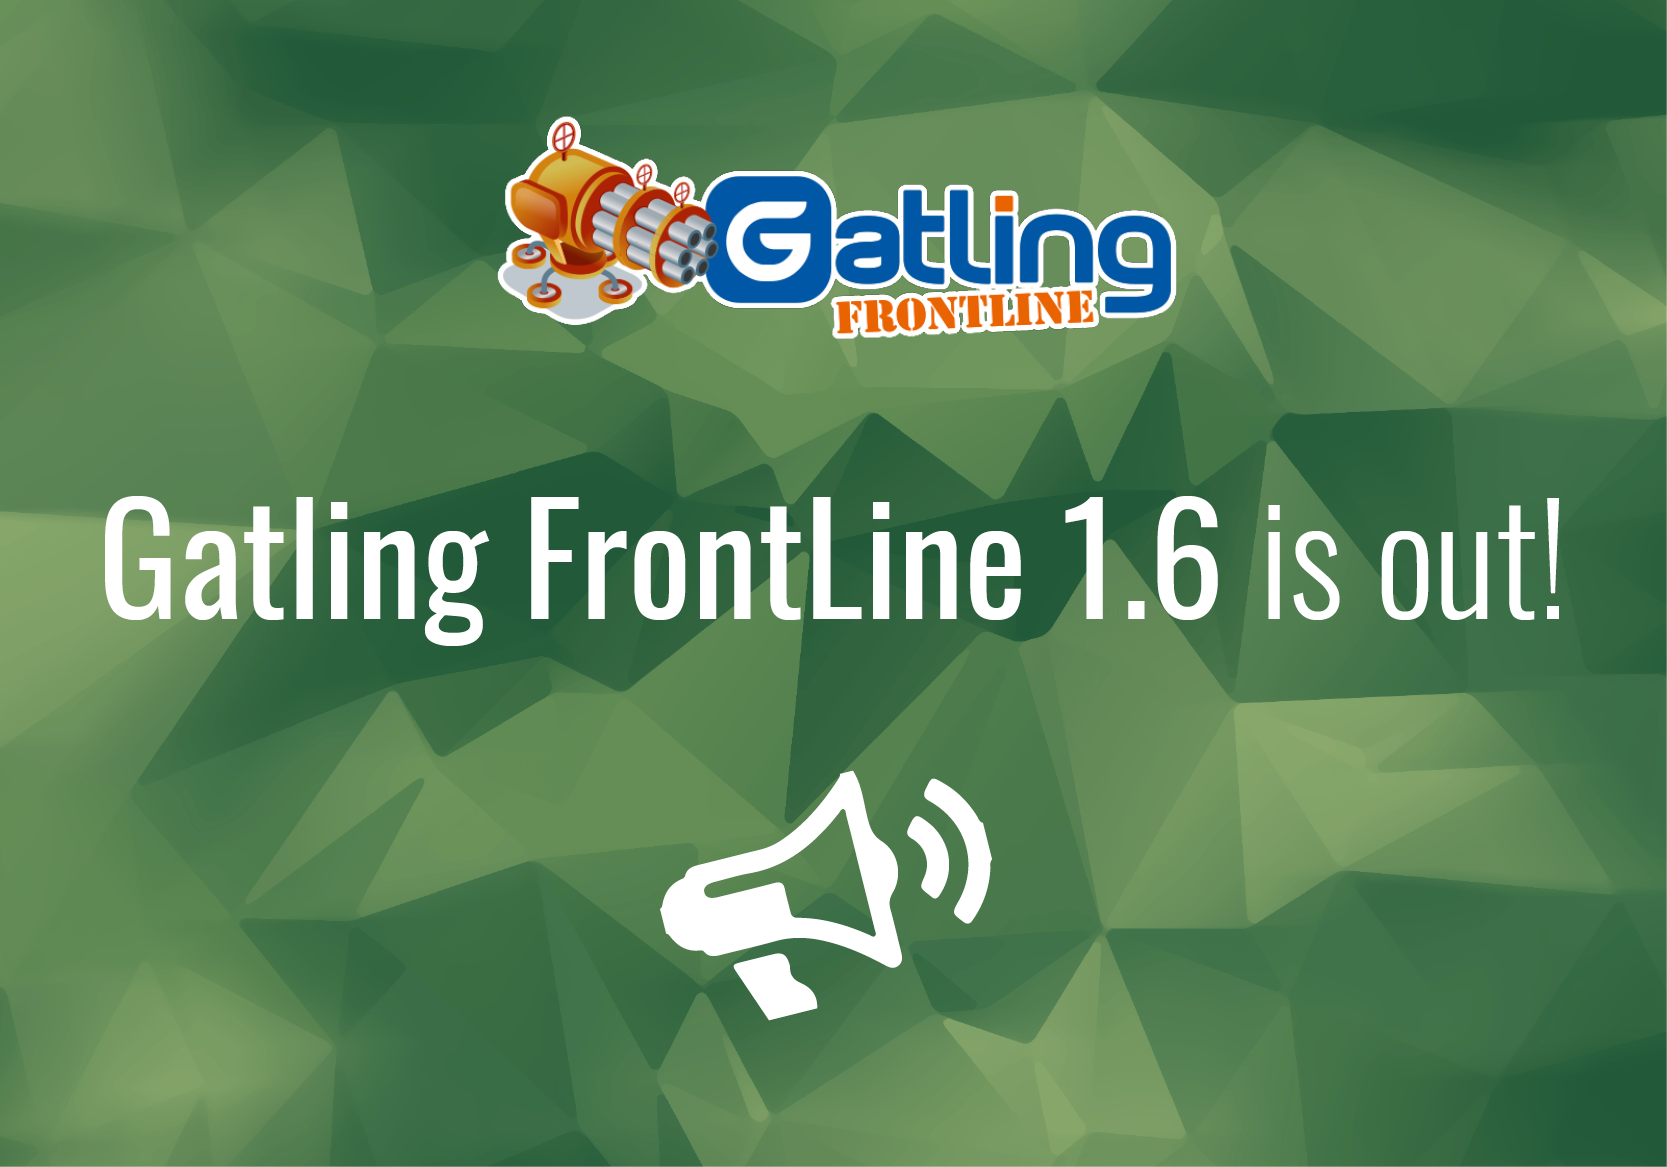 Gatling FrontLine 1.6 is out!